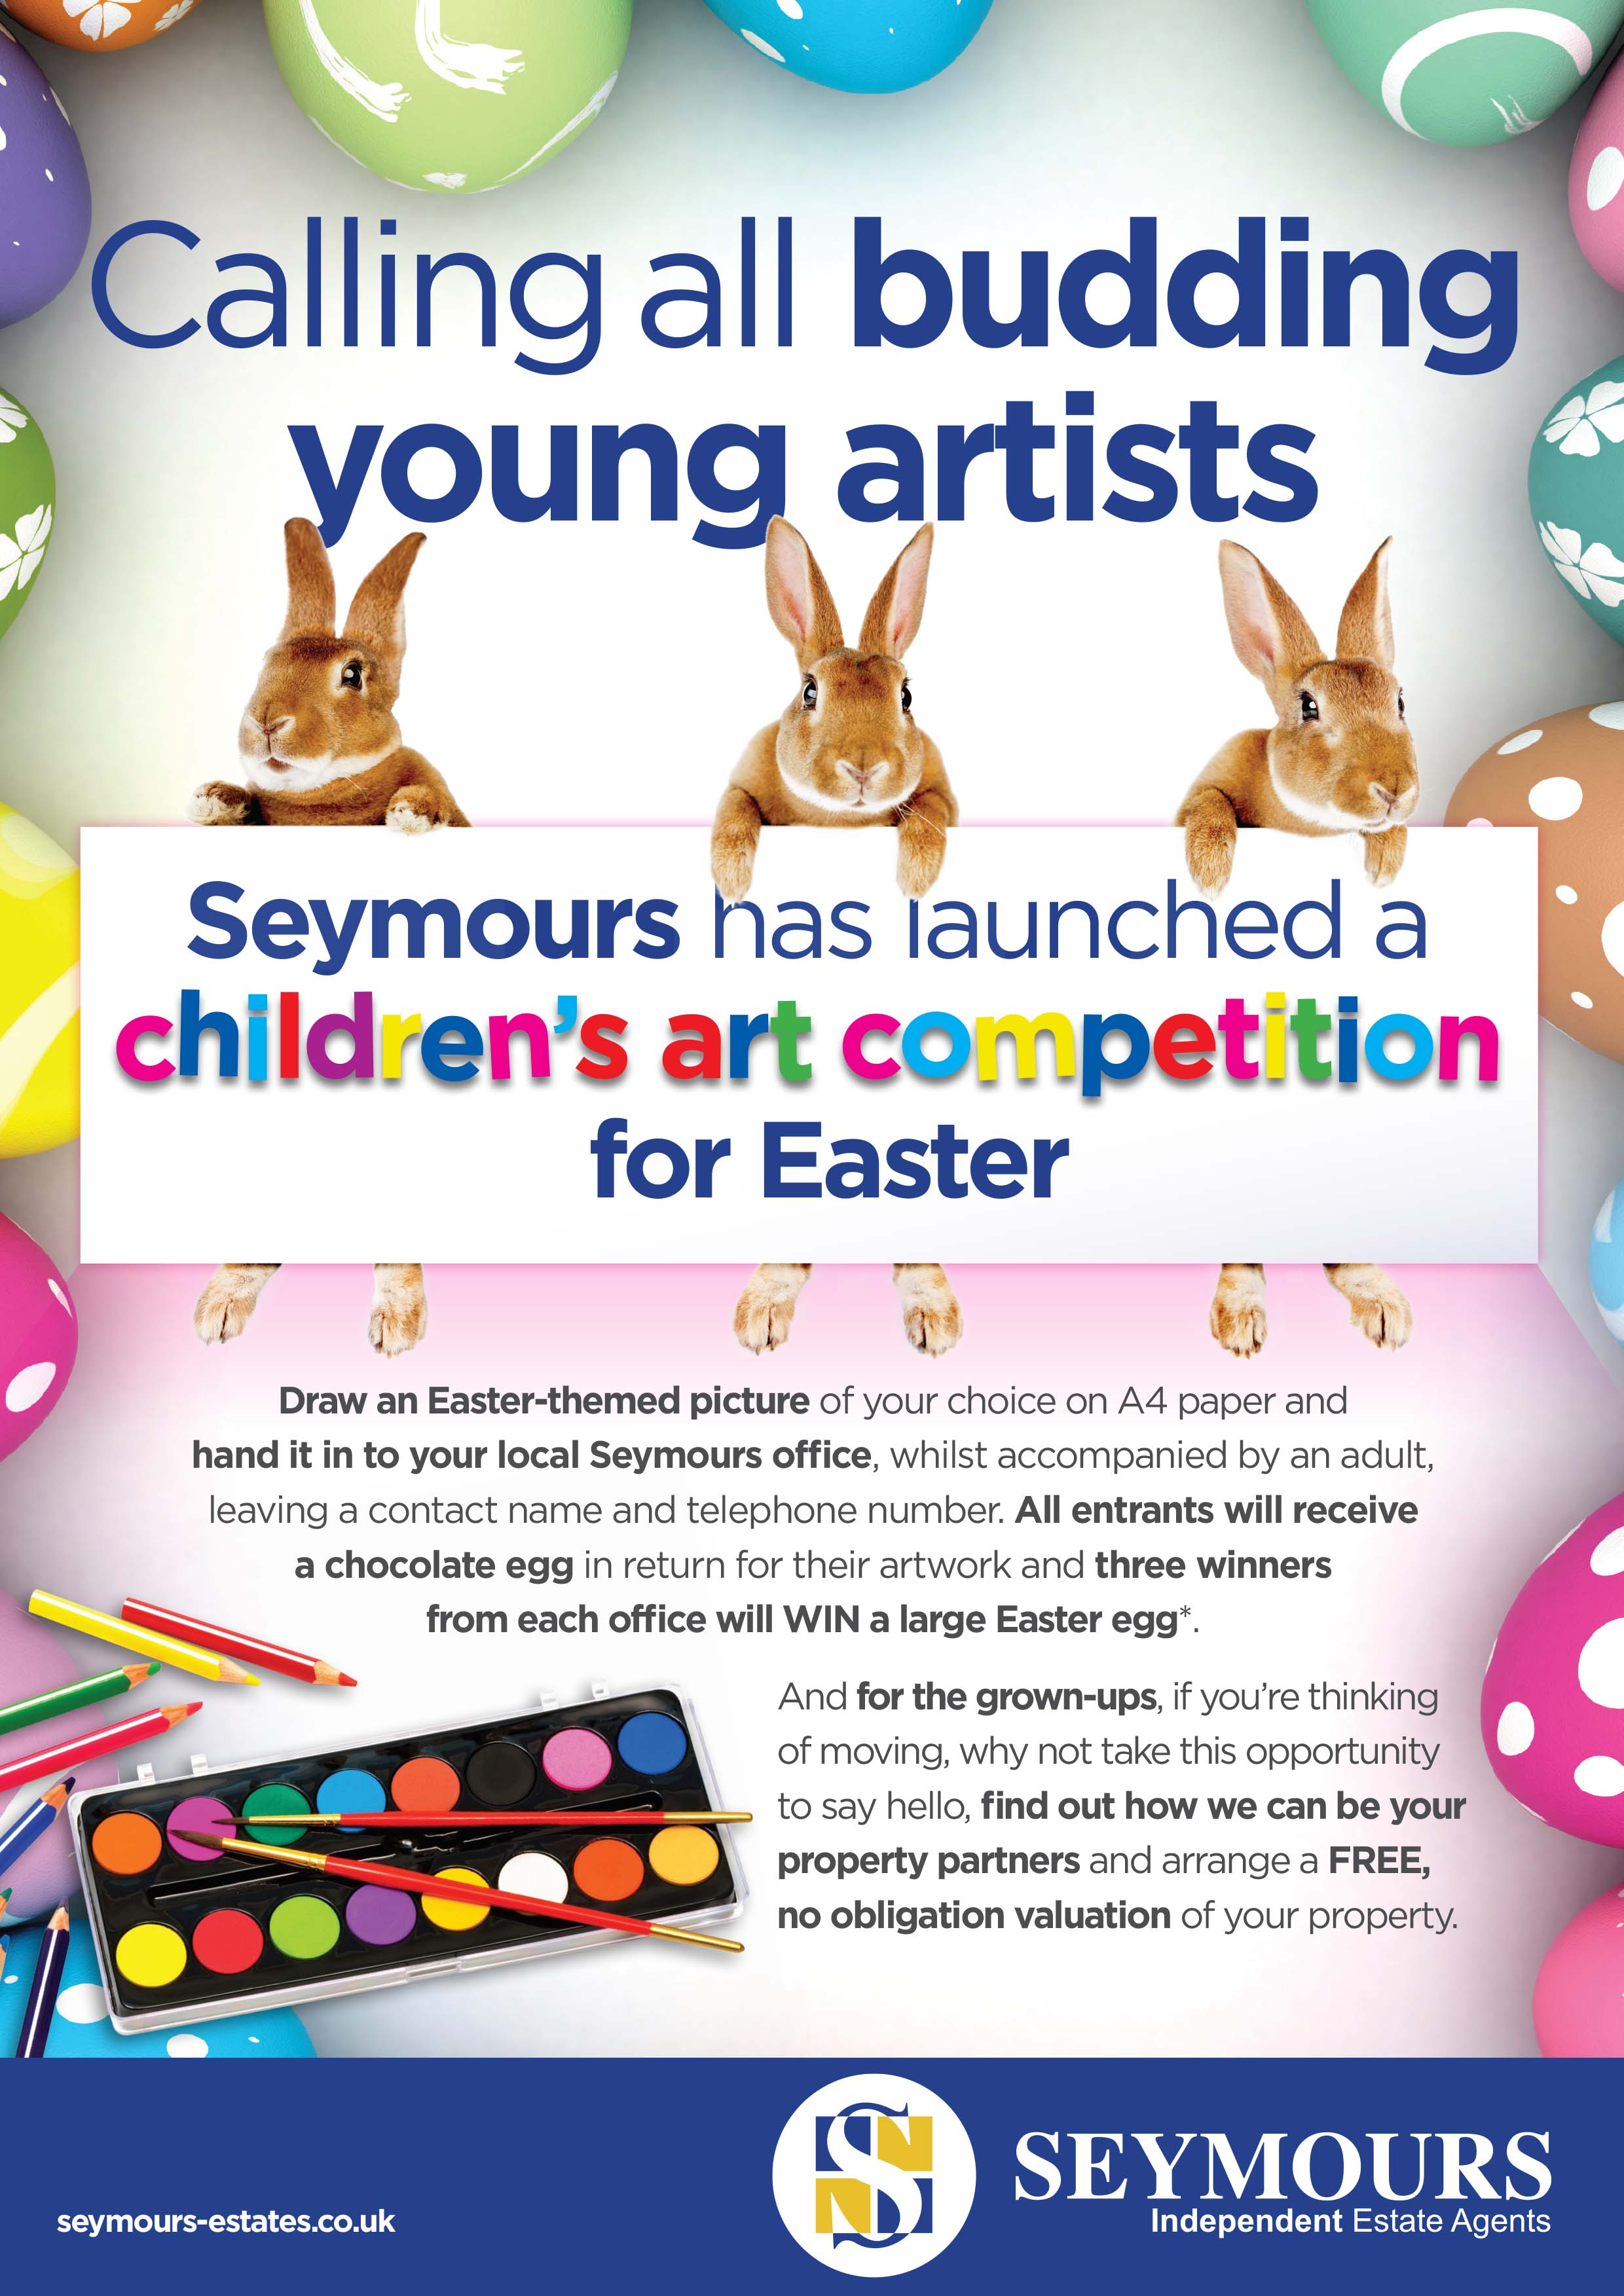 SEYMOURS SWAPS BRICKS AND MORTAR FOR BRUSH AND PALLETTE THIS EASTER